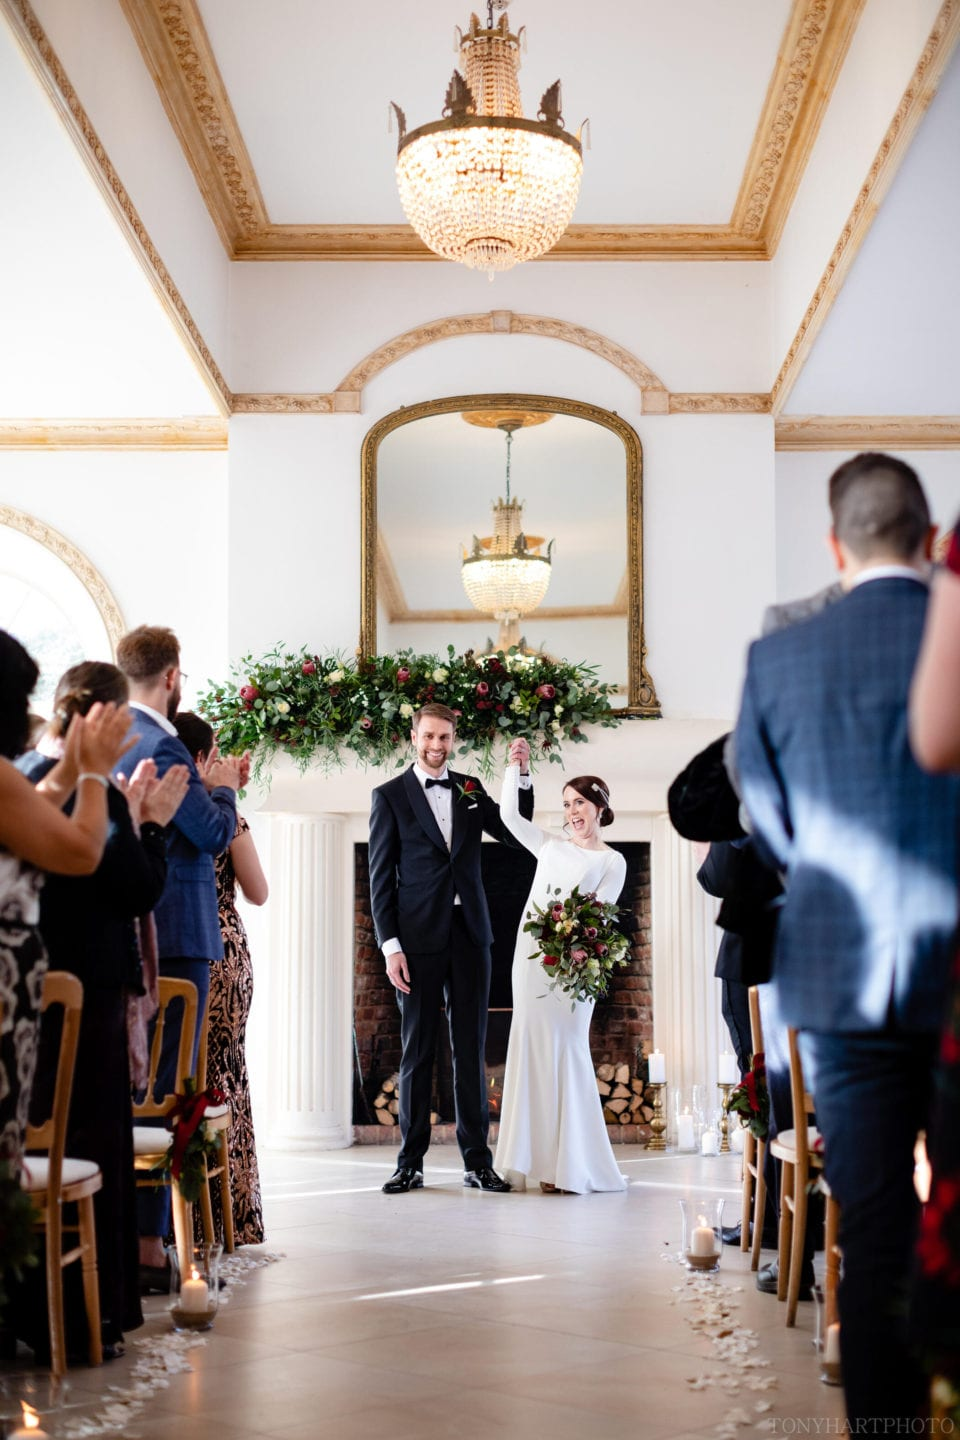 Northbrook Park Wedding Photography - James & Jemima celebrate their marriage in The Vine Room